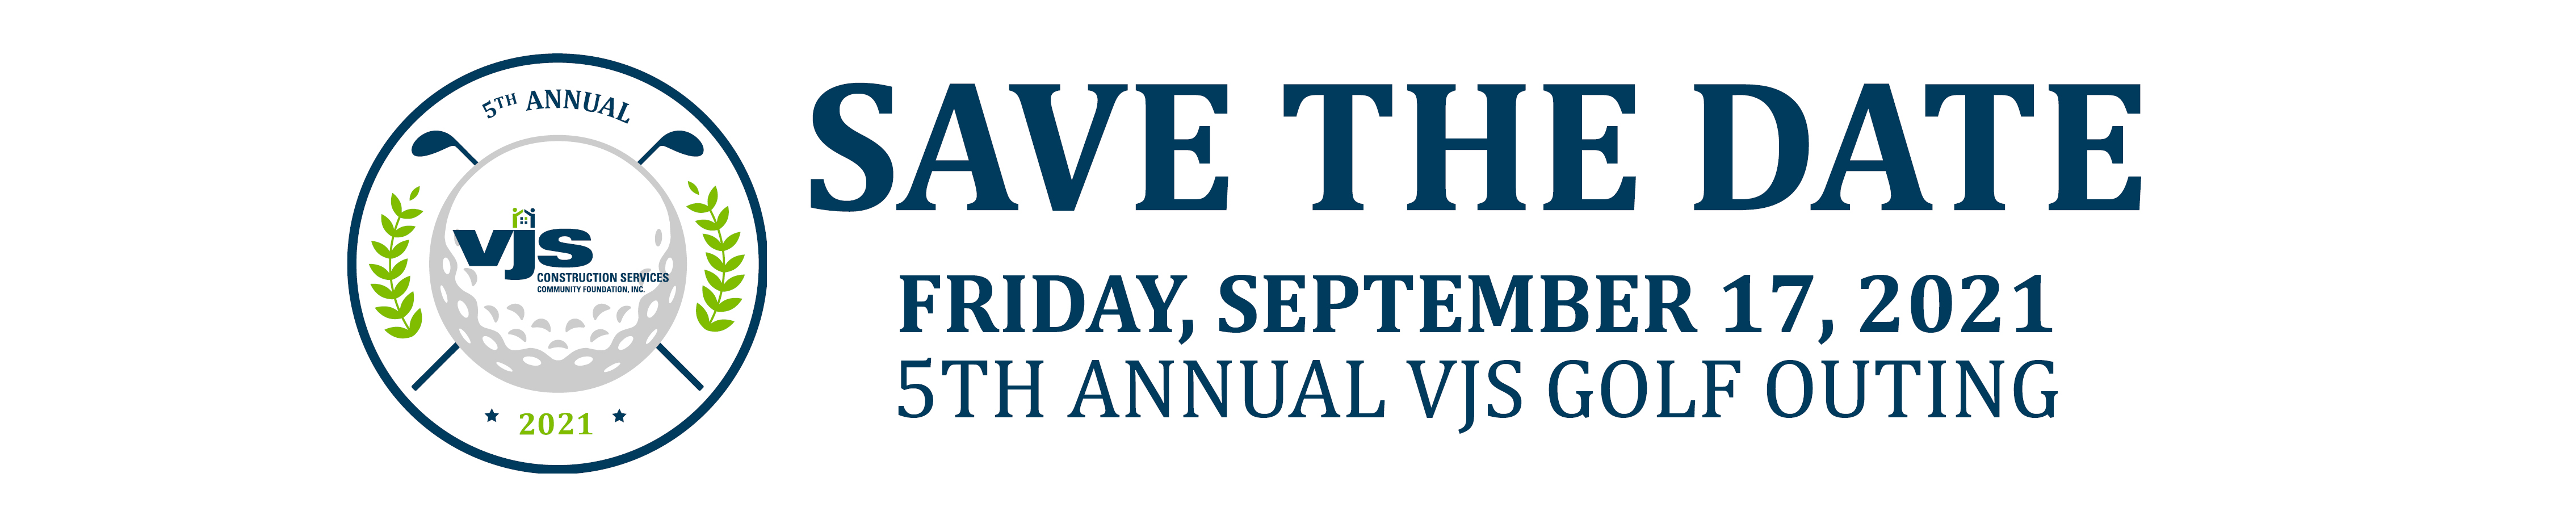 VJS Donates Proceeds from 4th Annual Golf Outing to Three Non-Profit Organizations 5